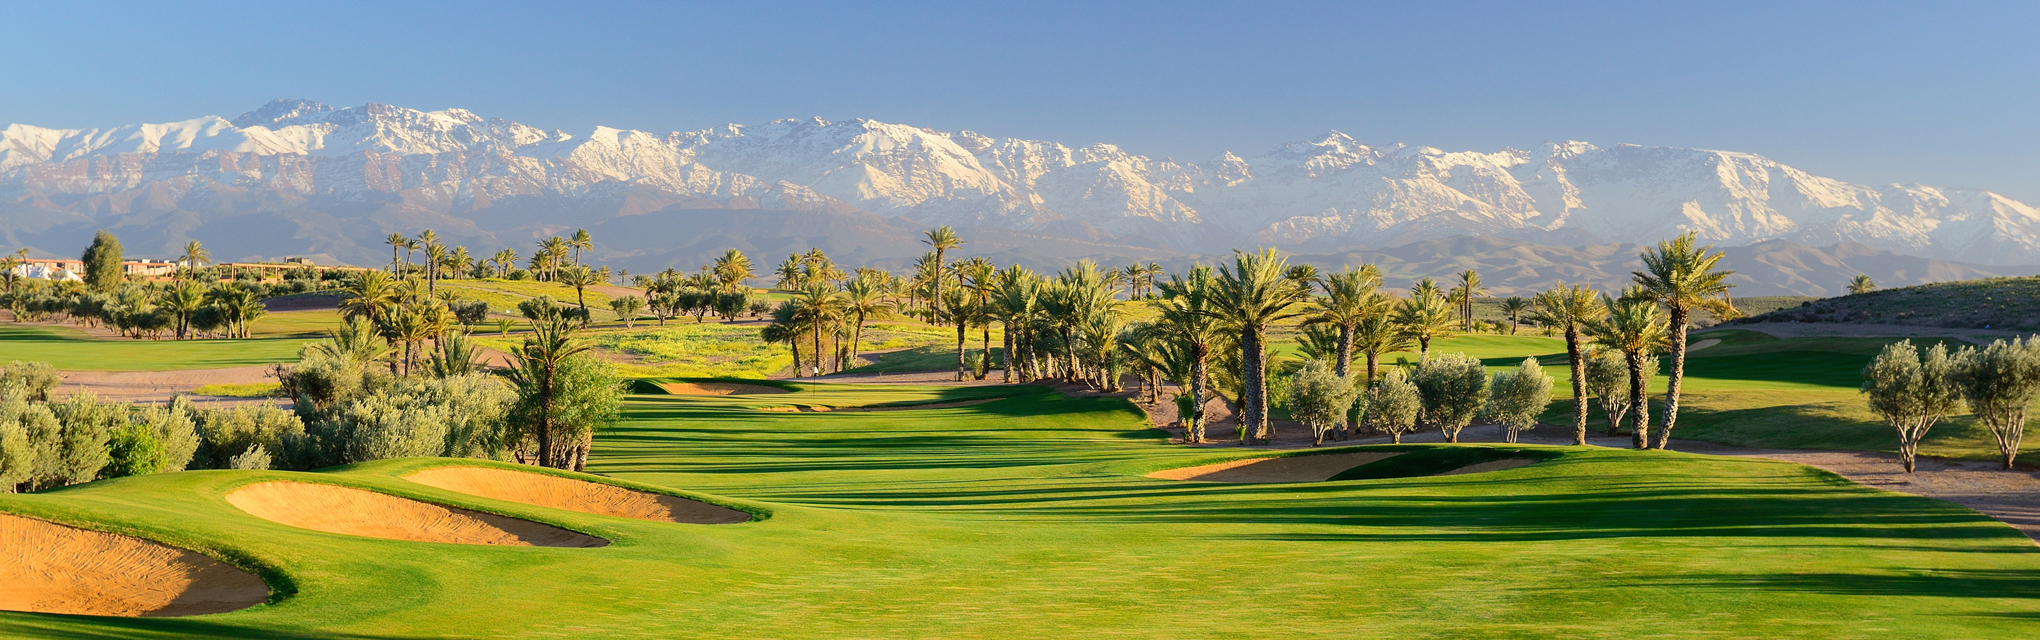 1ère édition Pro Am International Marrakech